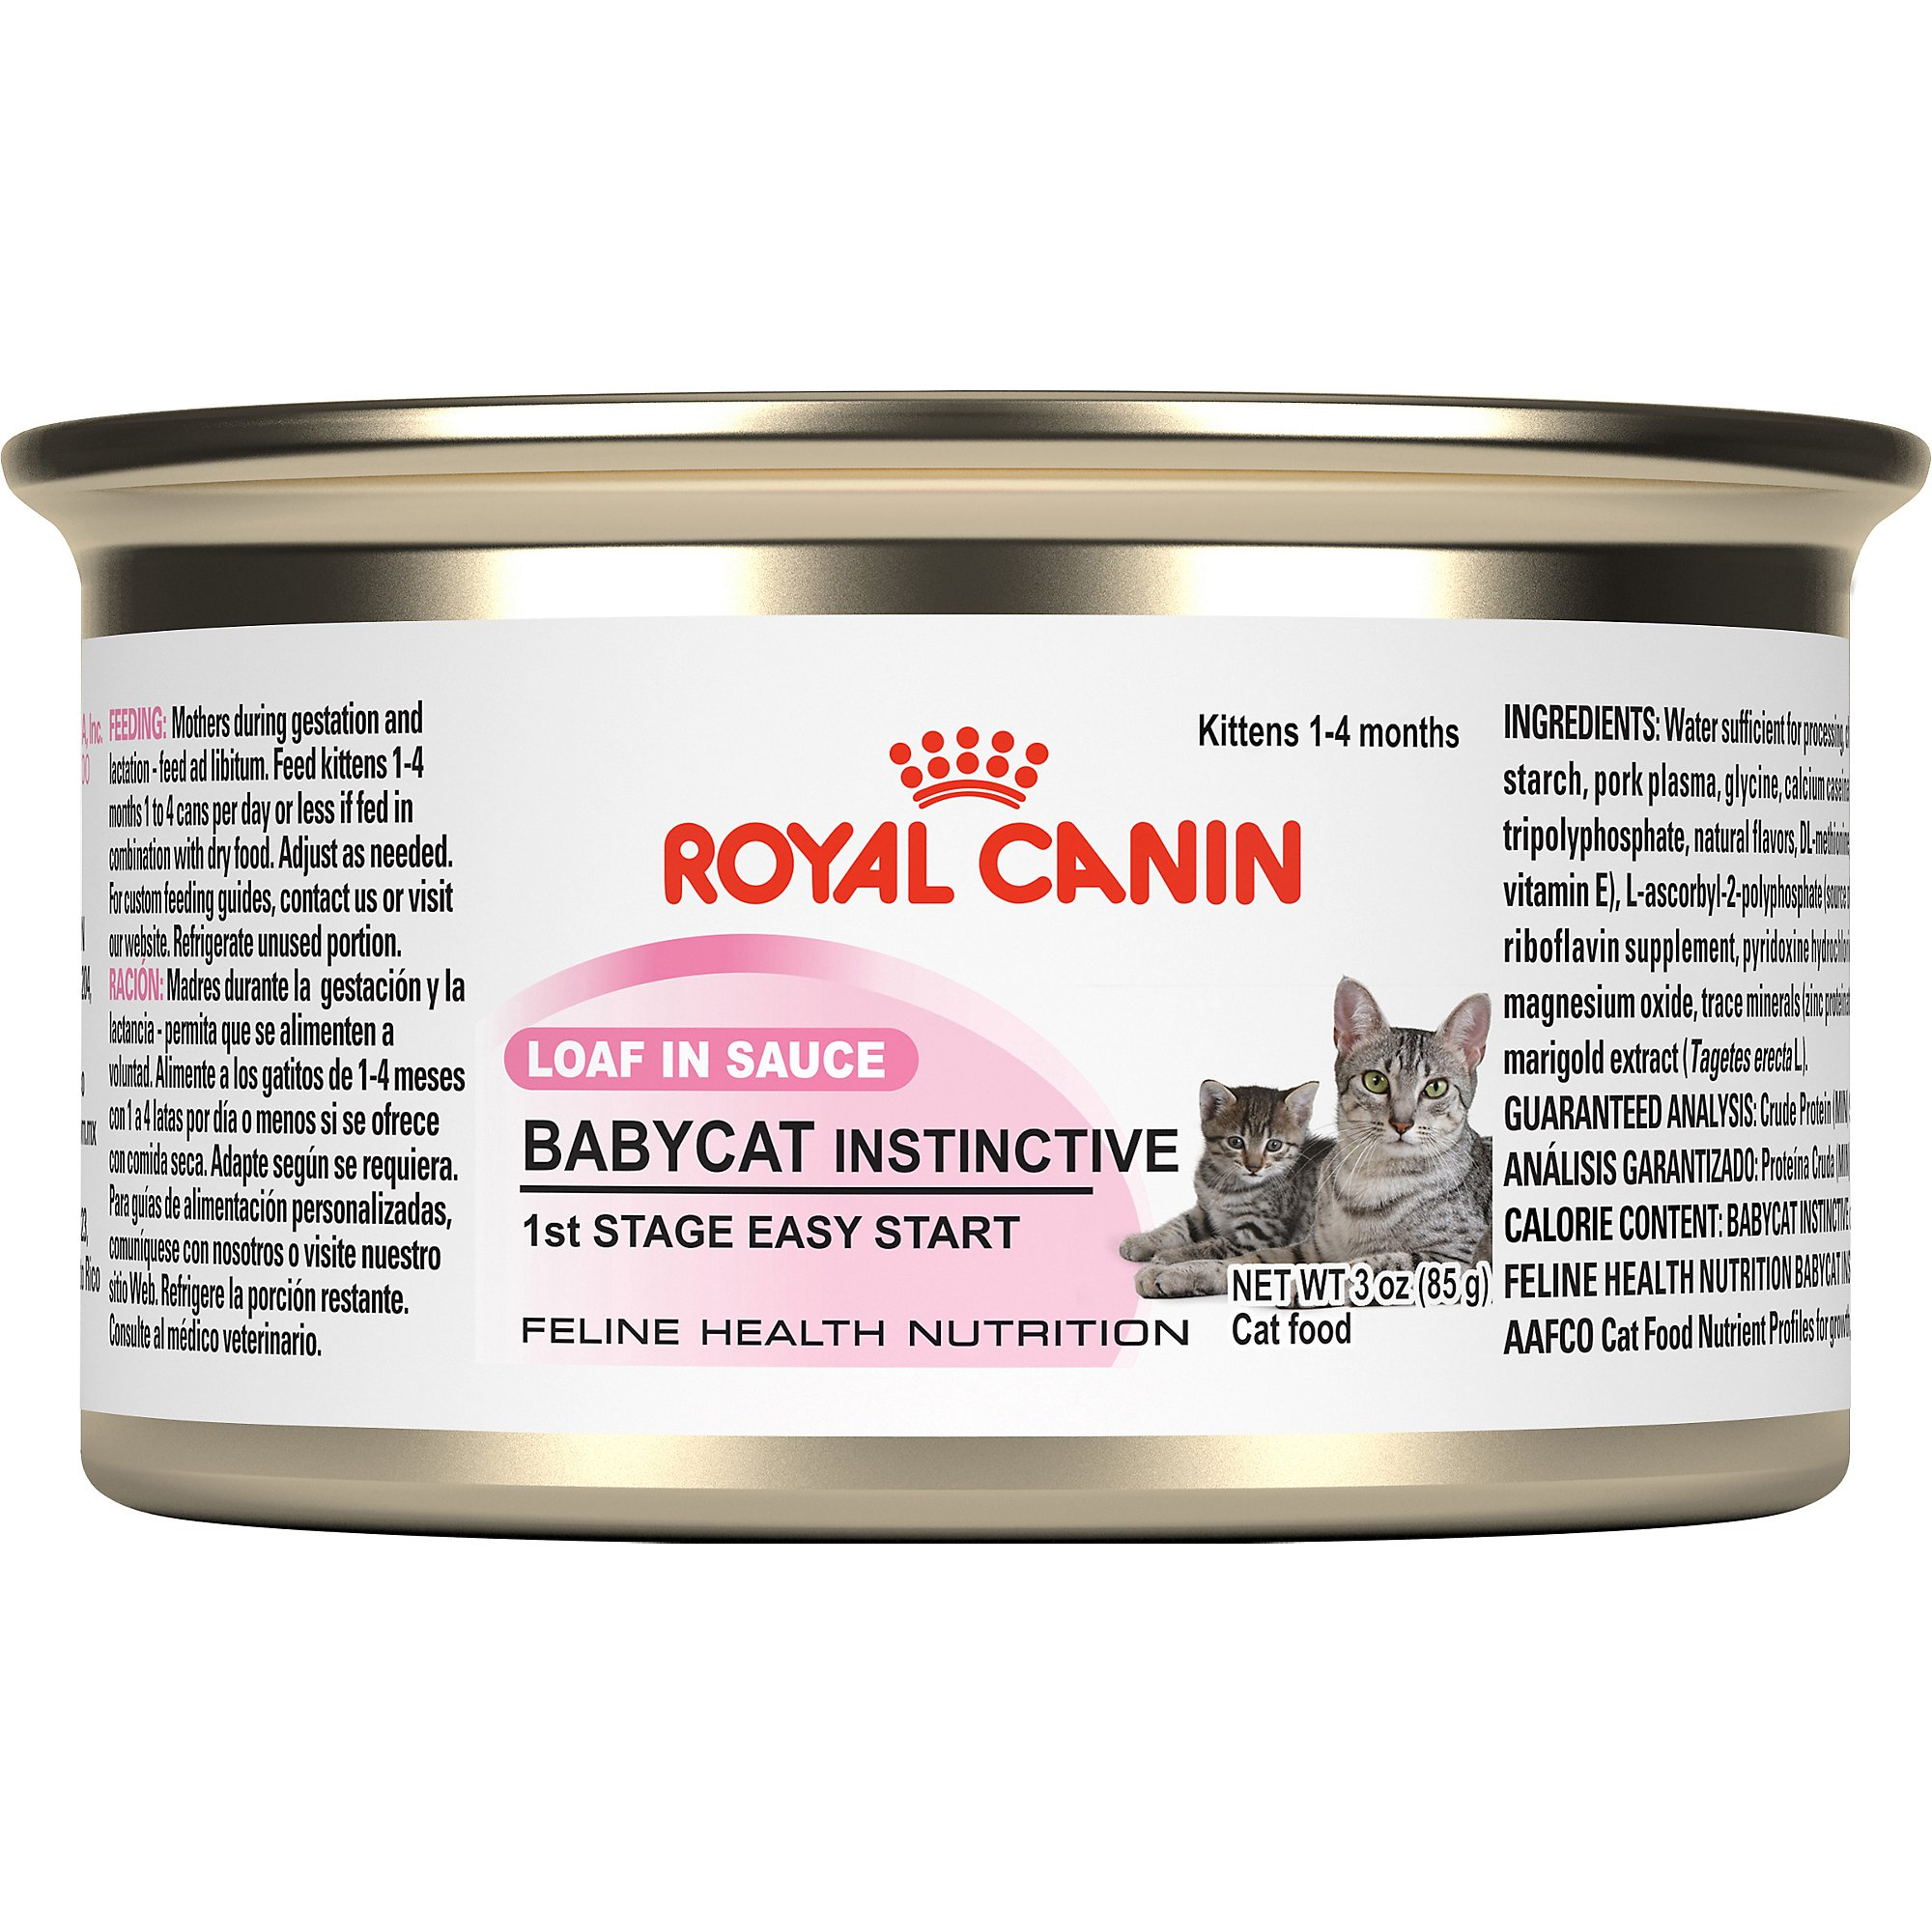 Royal Canin Feline Health Nutrition Baby Cat Instinctive